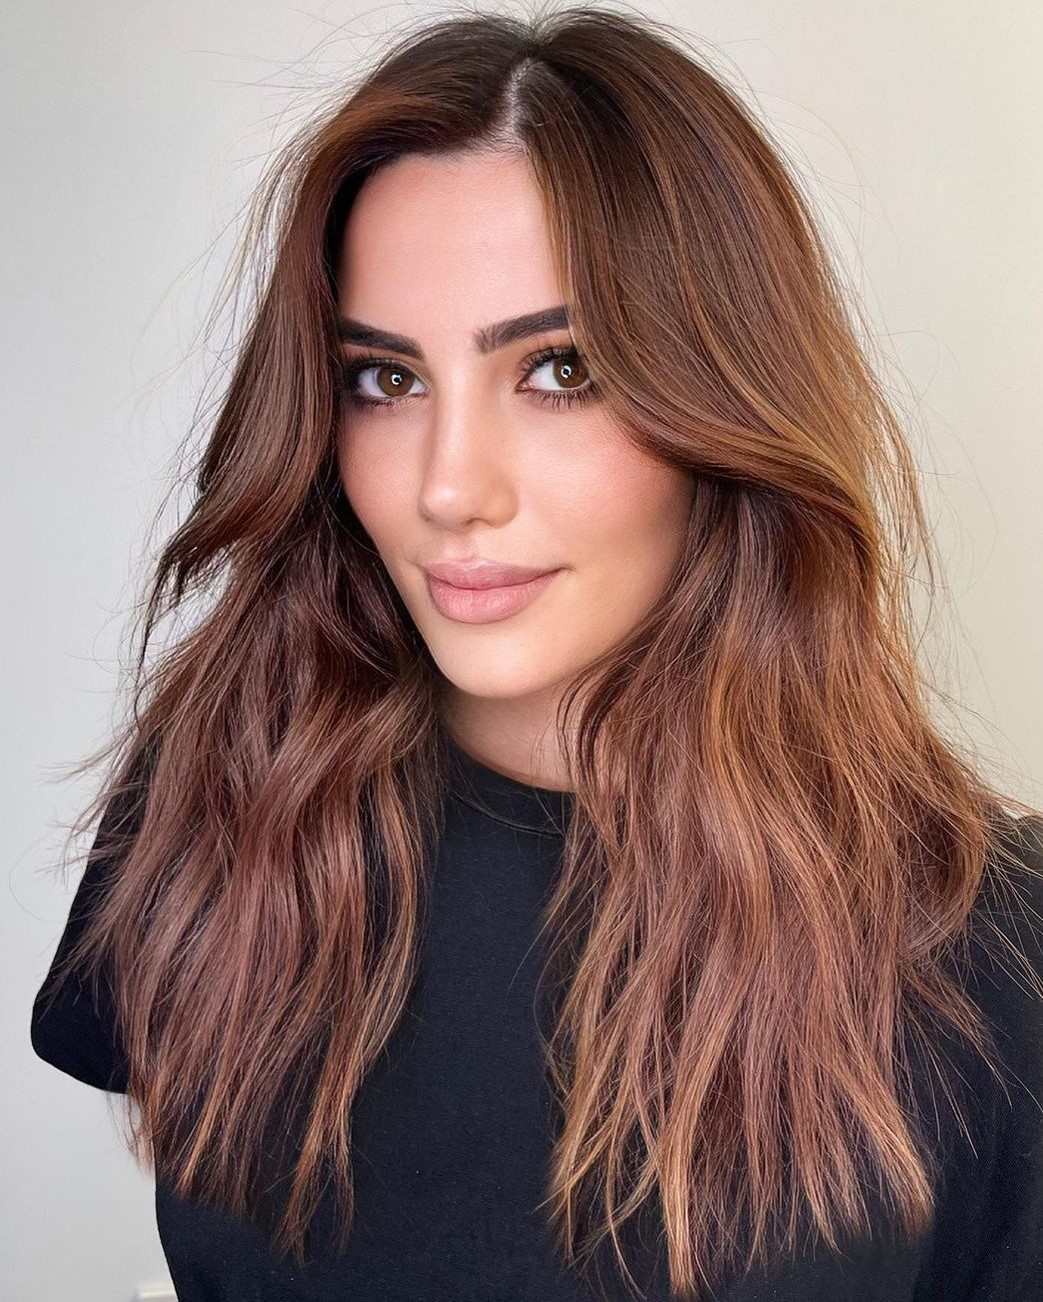 Reddish Brown Hair with Golden Highlights